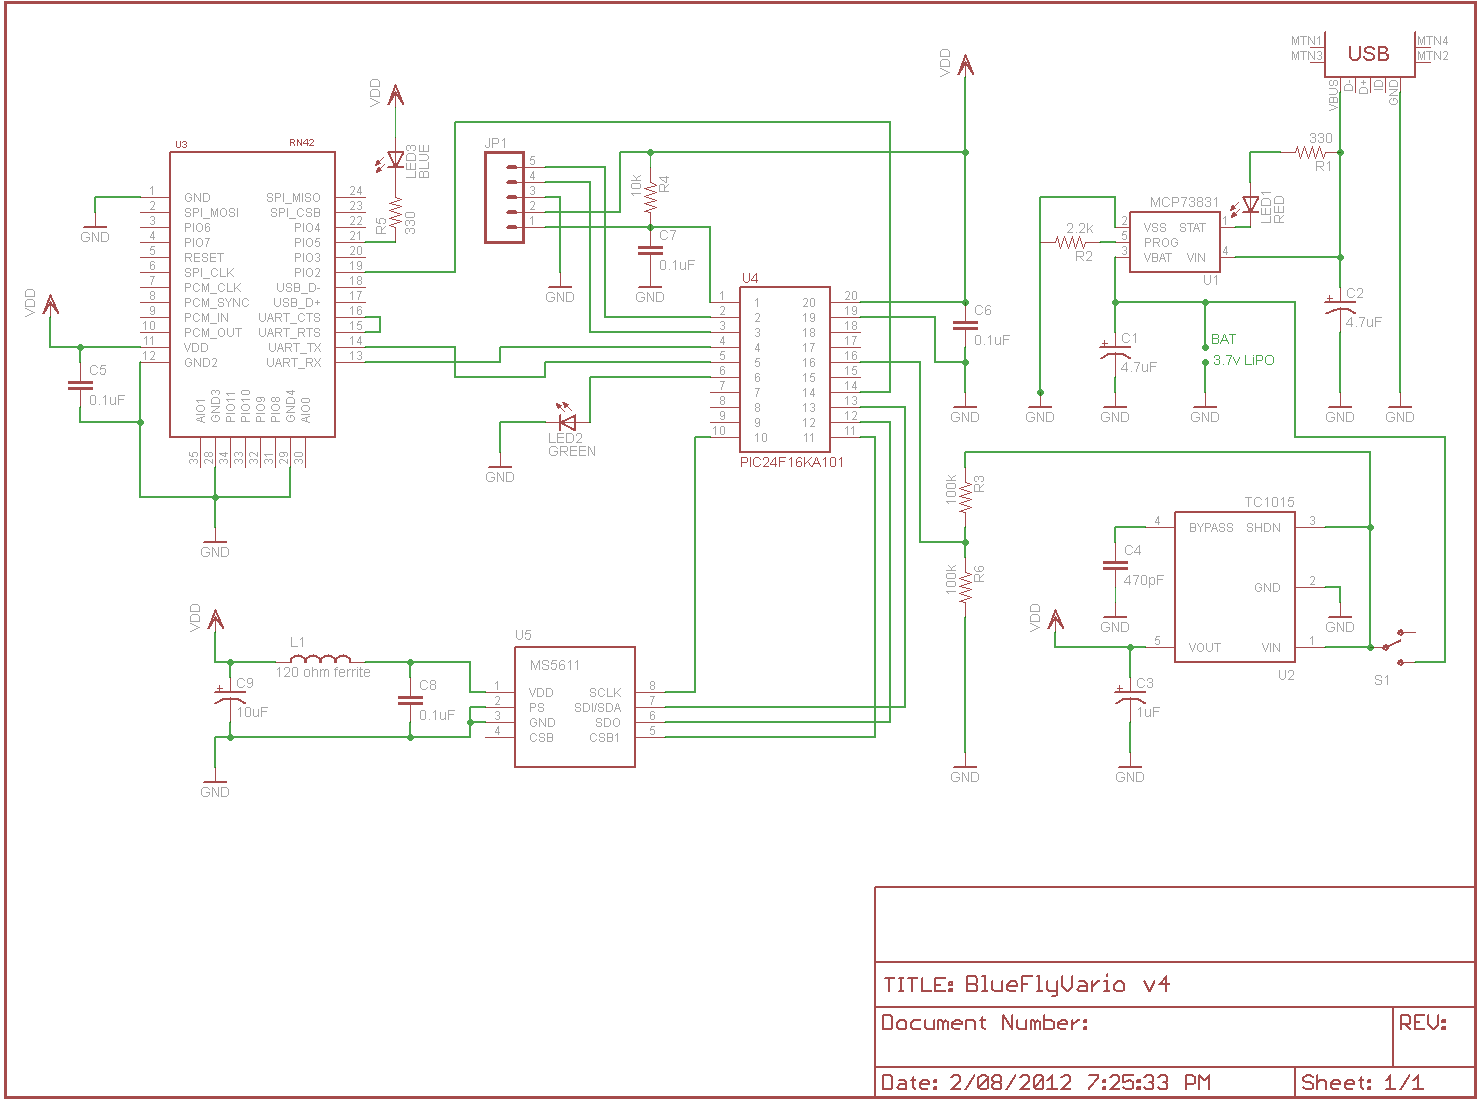 Variometer wiring schematic wiring diagram database blue fly vario development 2012 rh blueflyvario blogspot com basic electrical wiring diagrams wiring schematics for cars asfbconference2016 Image collections